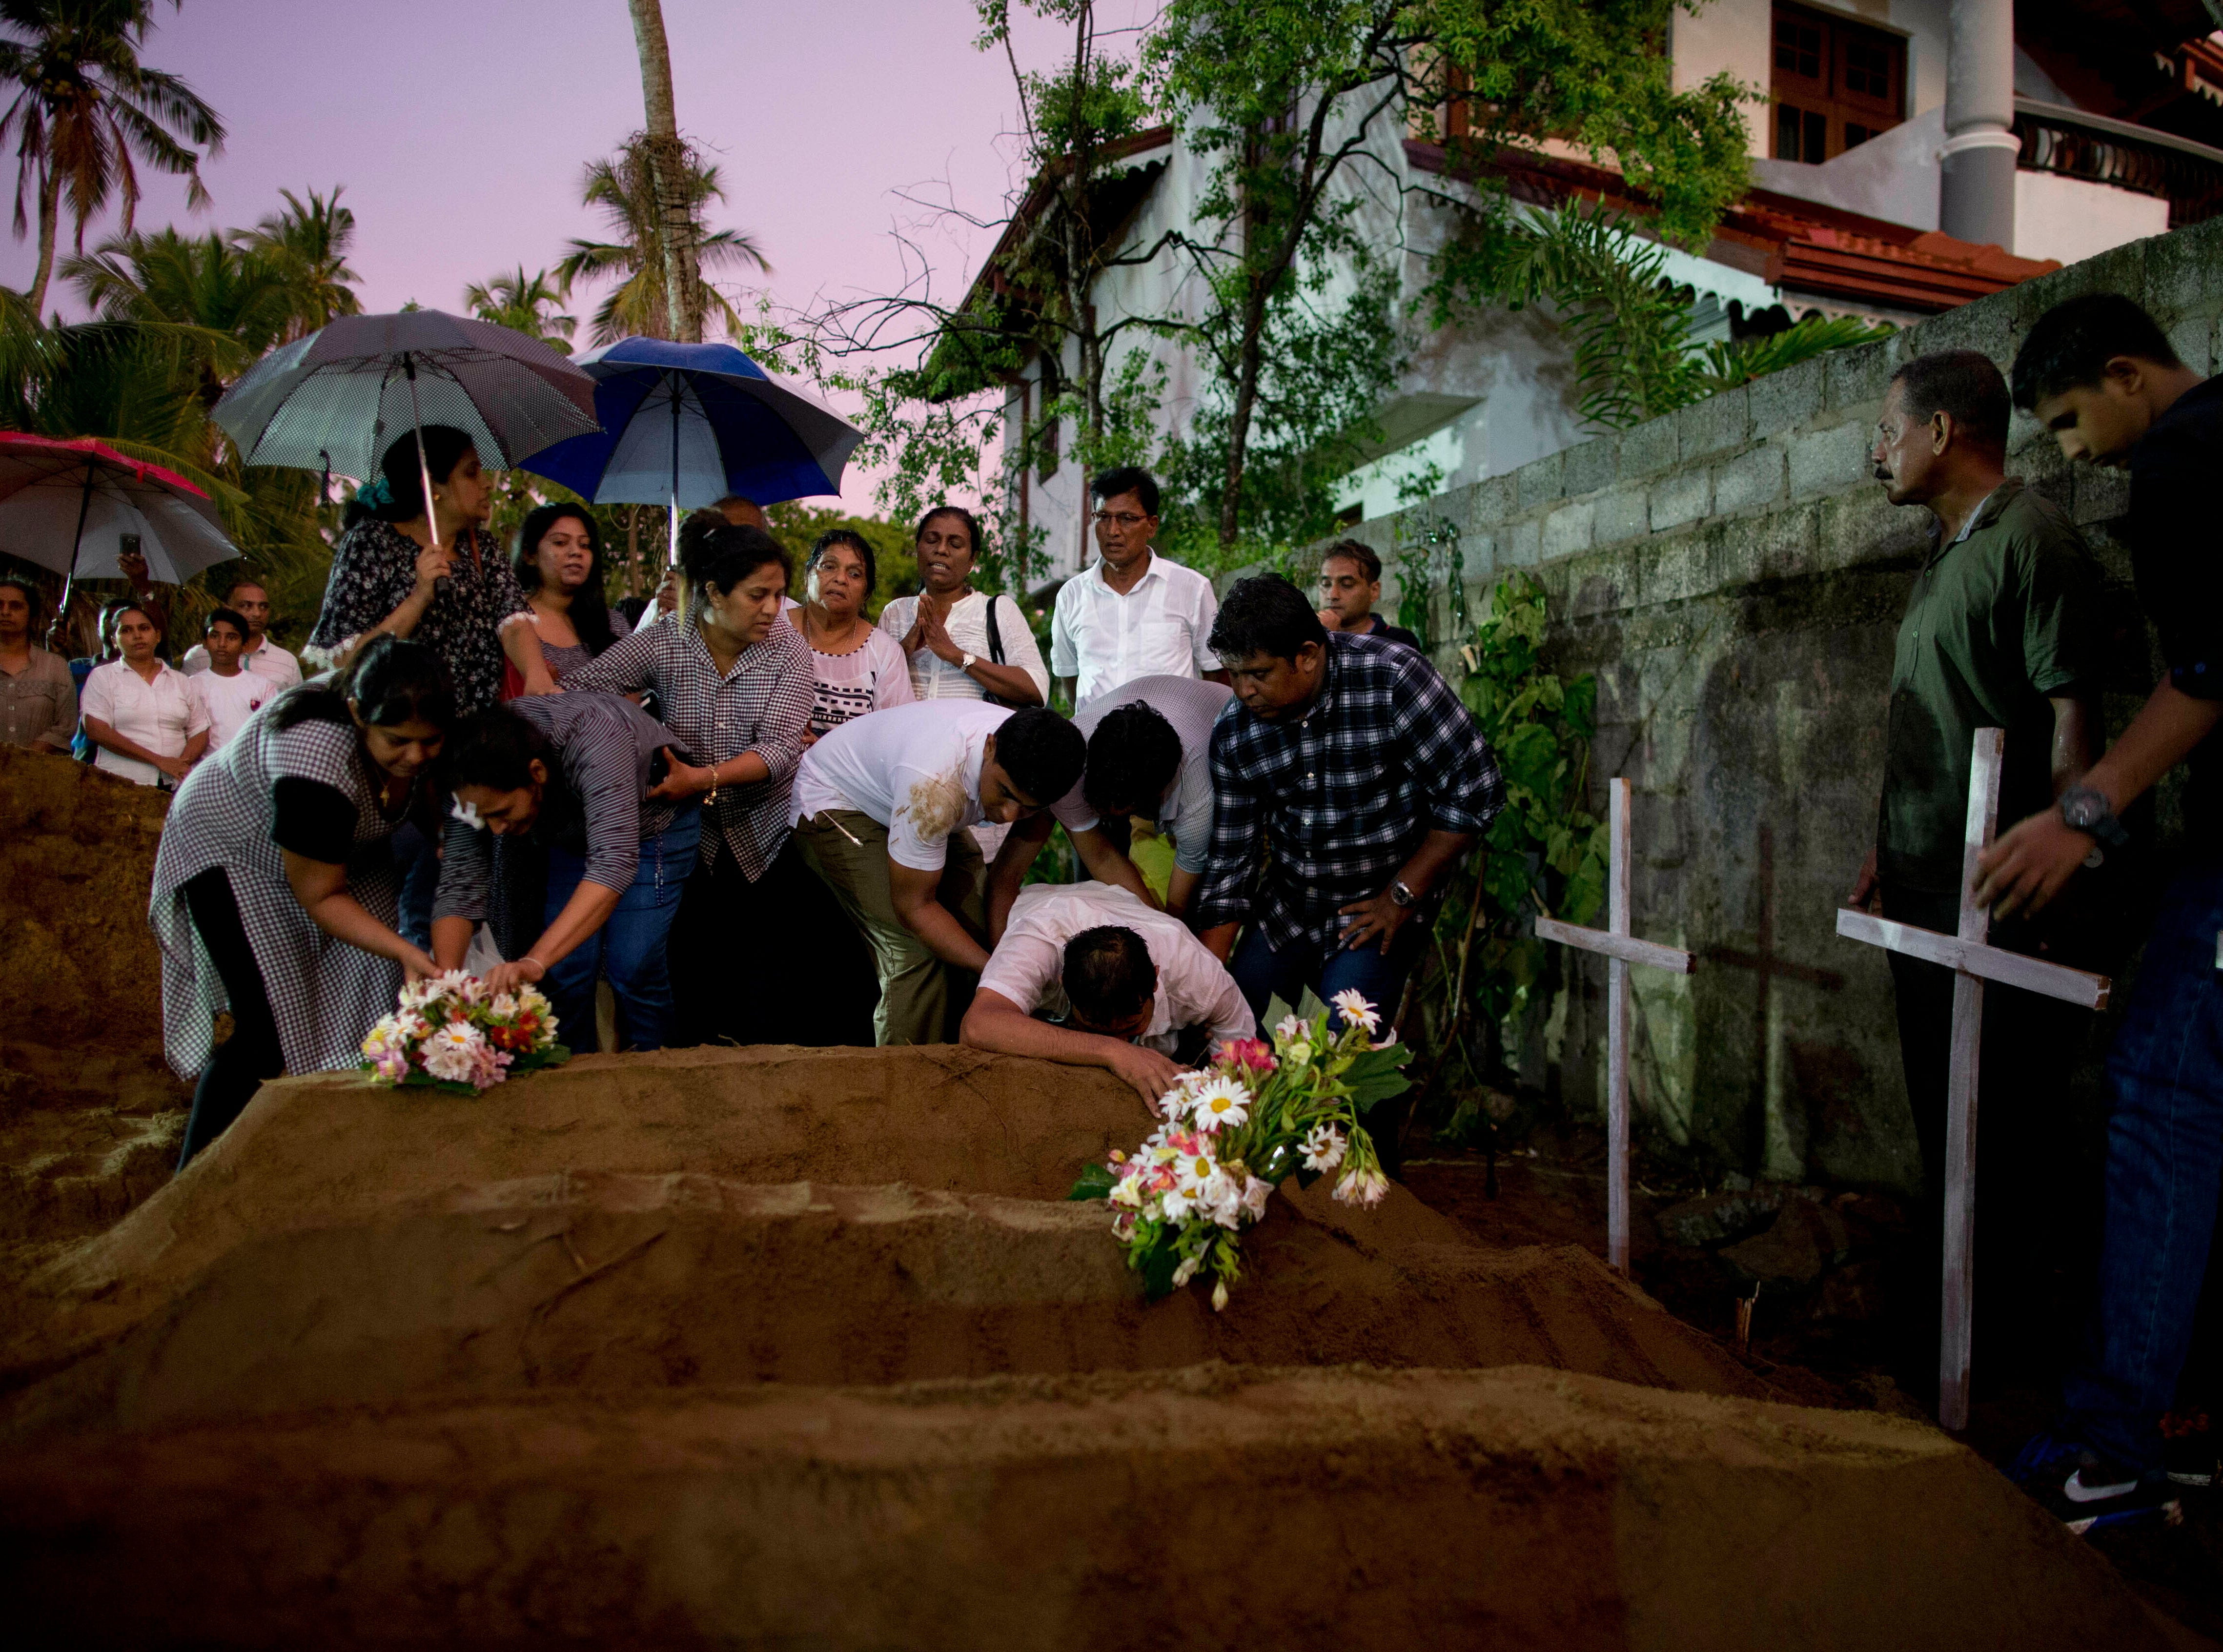 Relatives place flowers after the burial of three victims of the same family, who died at Easter Sunday bomb blast at St. Sebastian Church in Negombo, Sri Lanka, Monday, April 22, 2019. Easter Sunday bombings of churches, luxury hotels and other sites was Sri Lanka's deadliest violence since a devastating civil war in the South Asian island nation ended a decade ago.